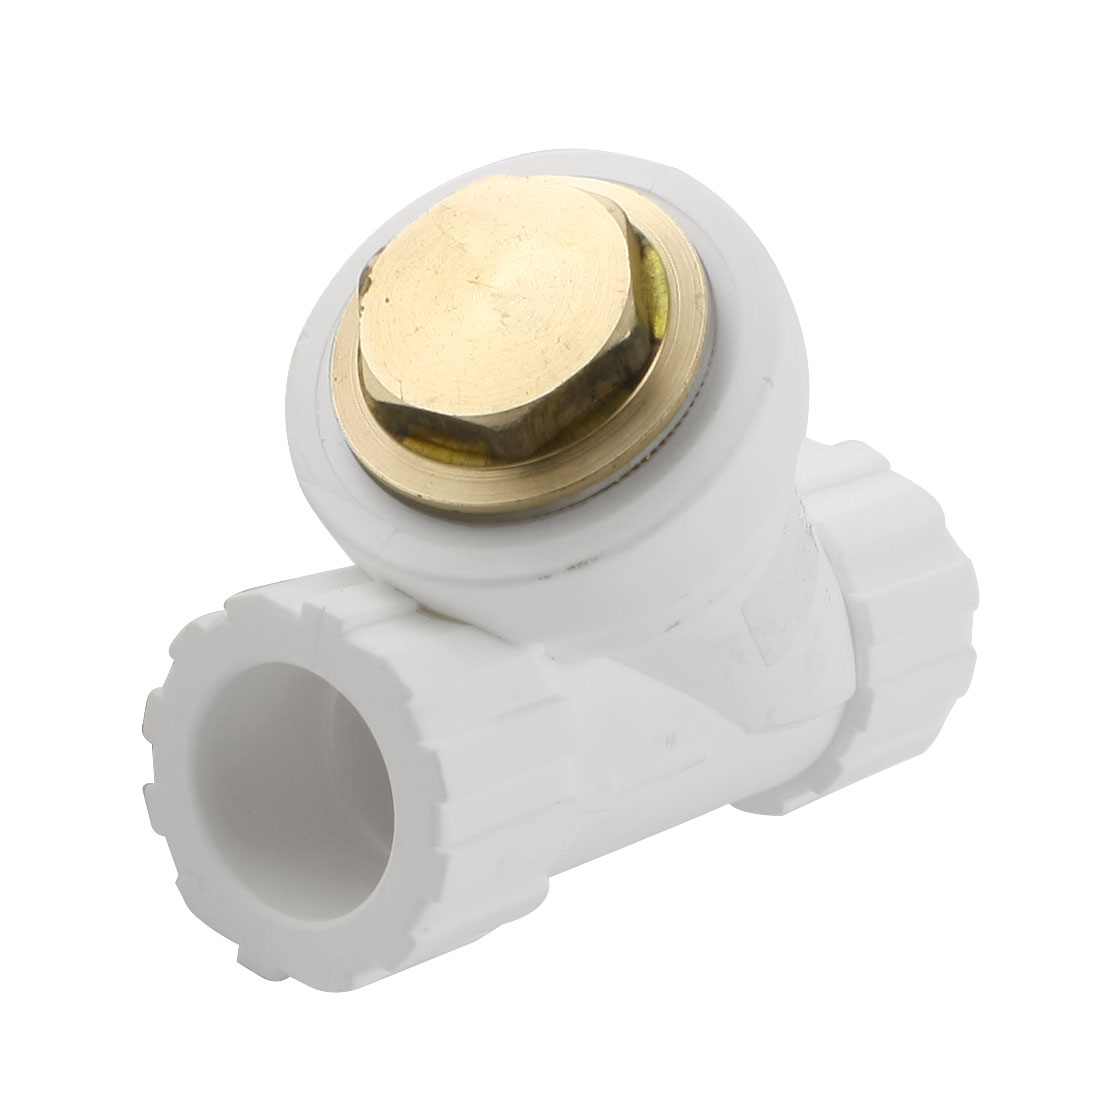 25mm to 25mm Straight Water Hose Pipe Fitting Connector w Filter